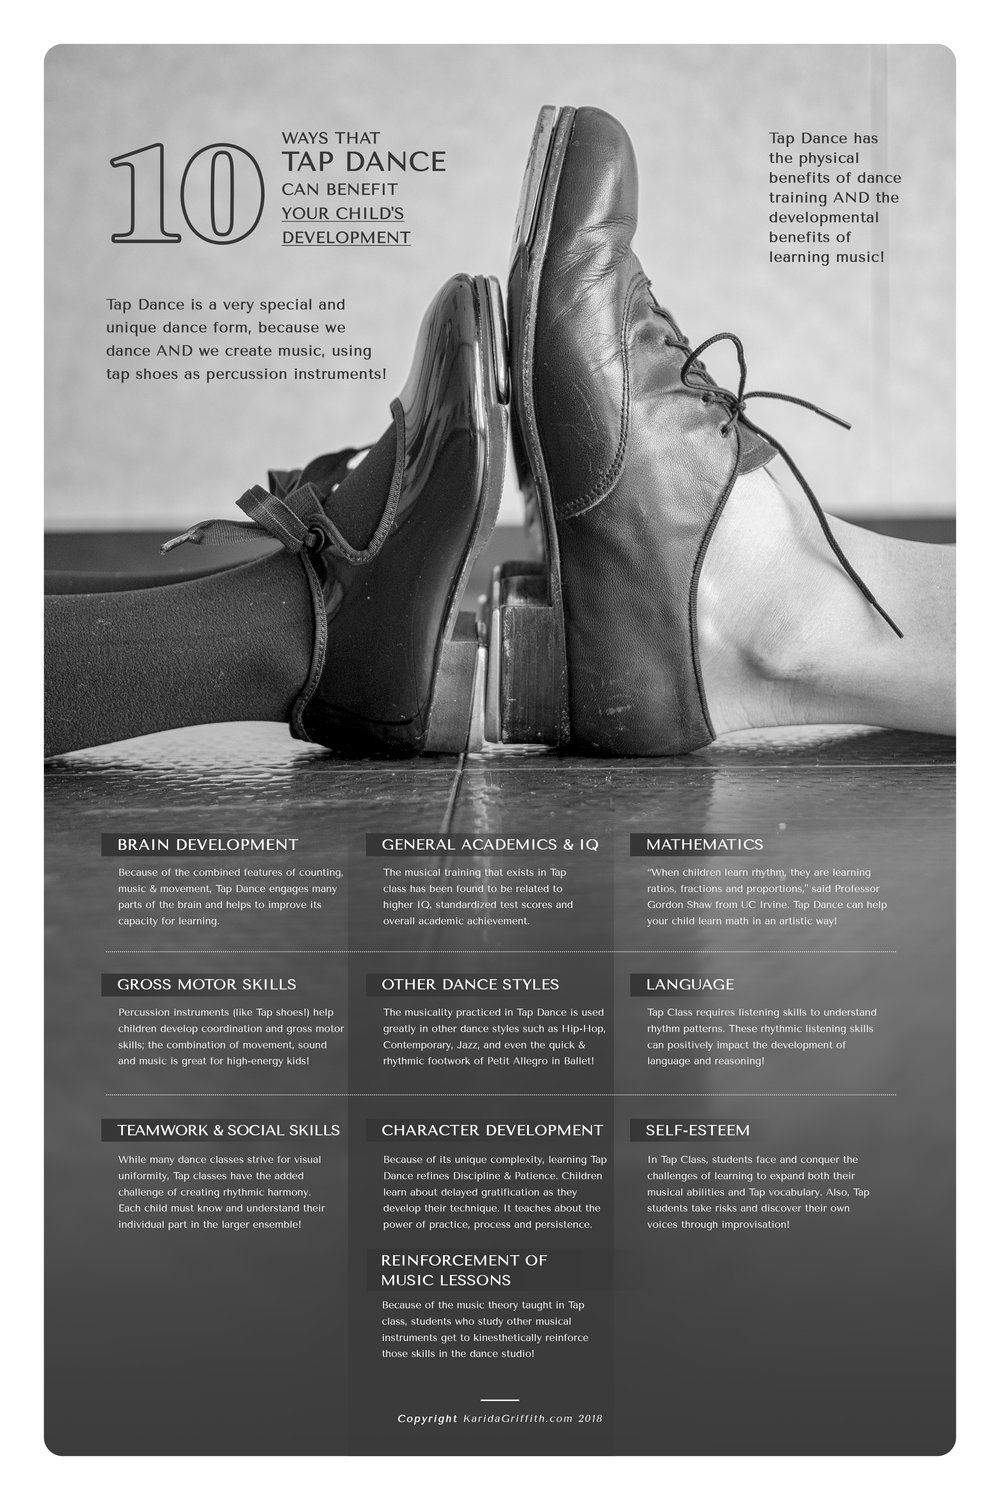 Tap+Dance+Benefits+Poster+by+Karida+Griffith.jpg